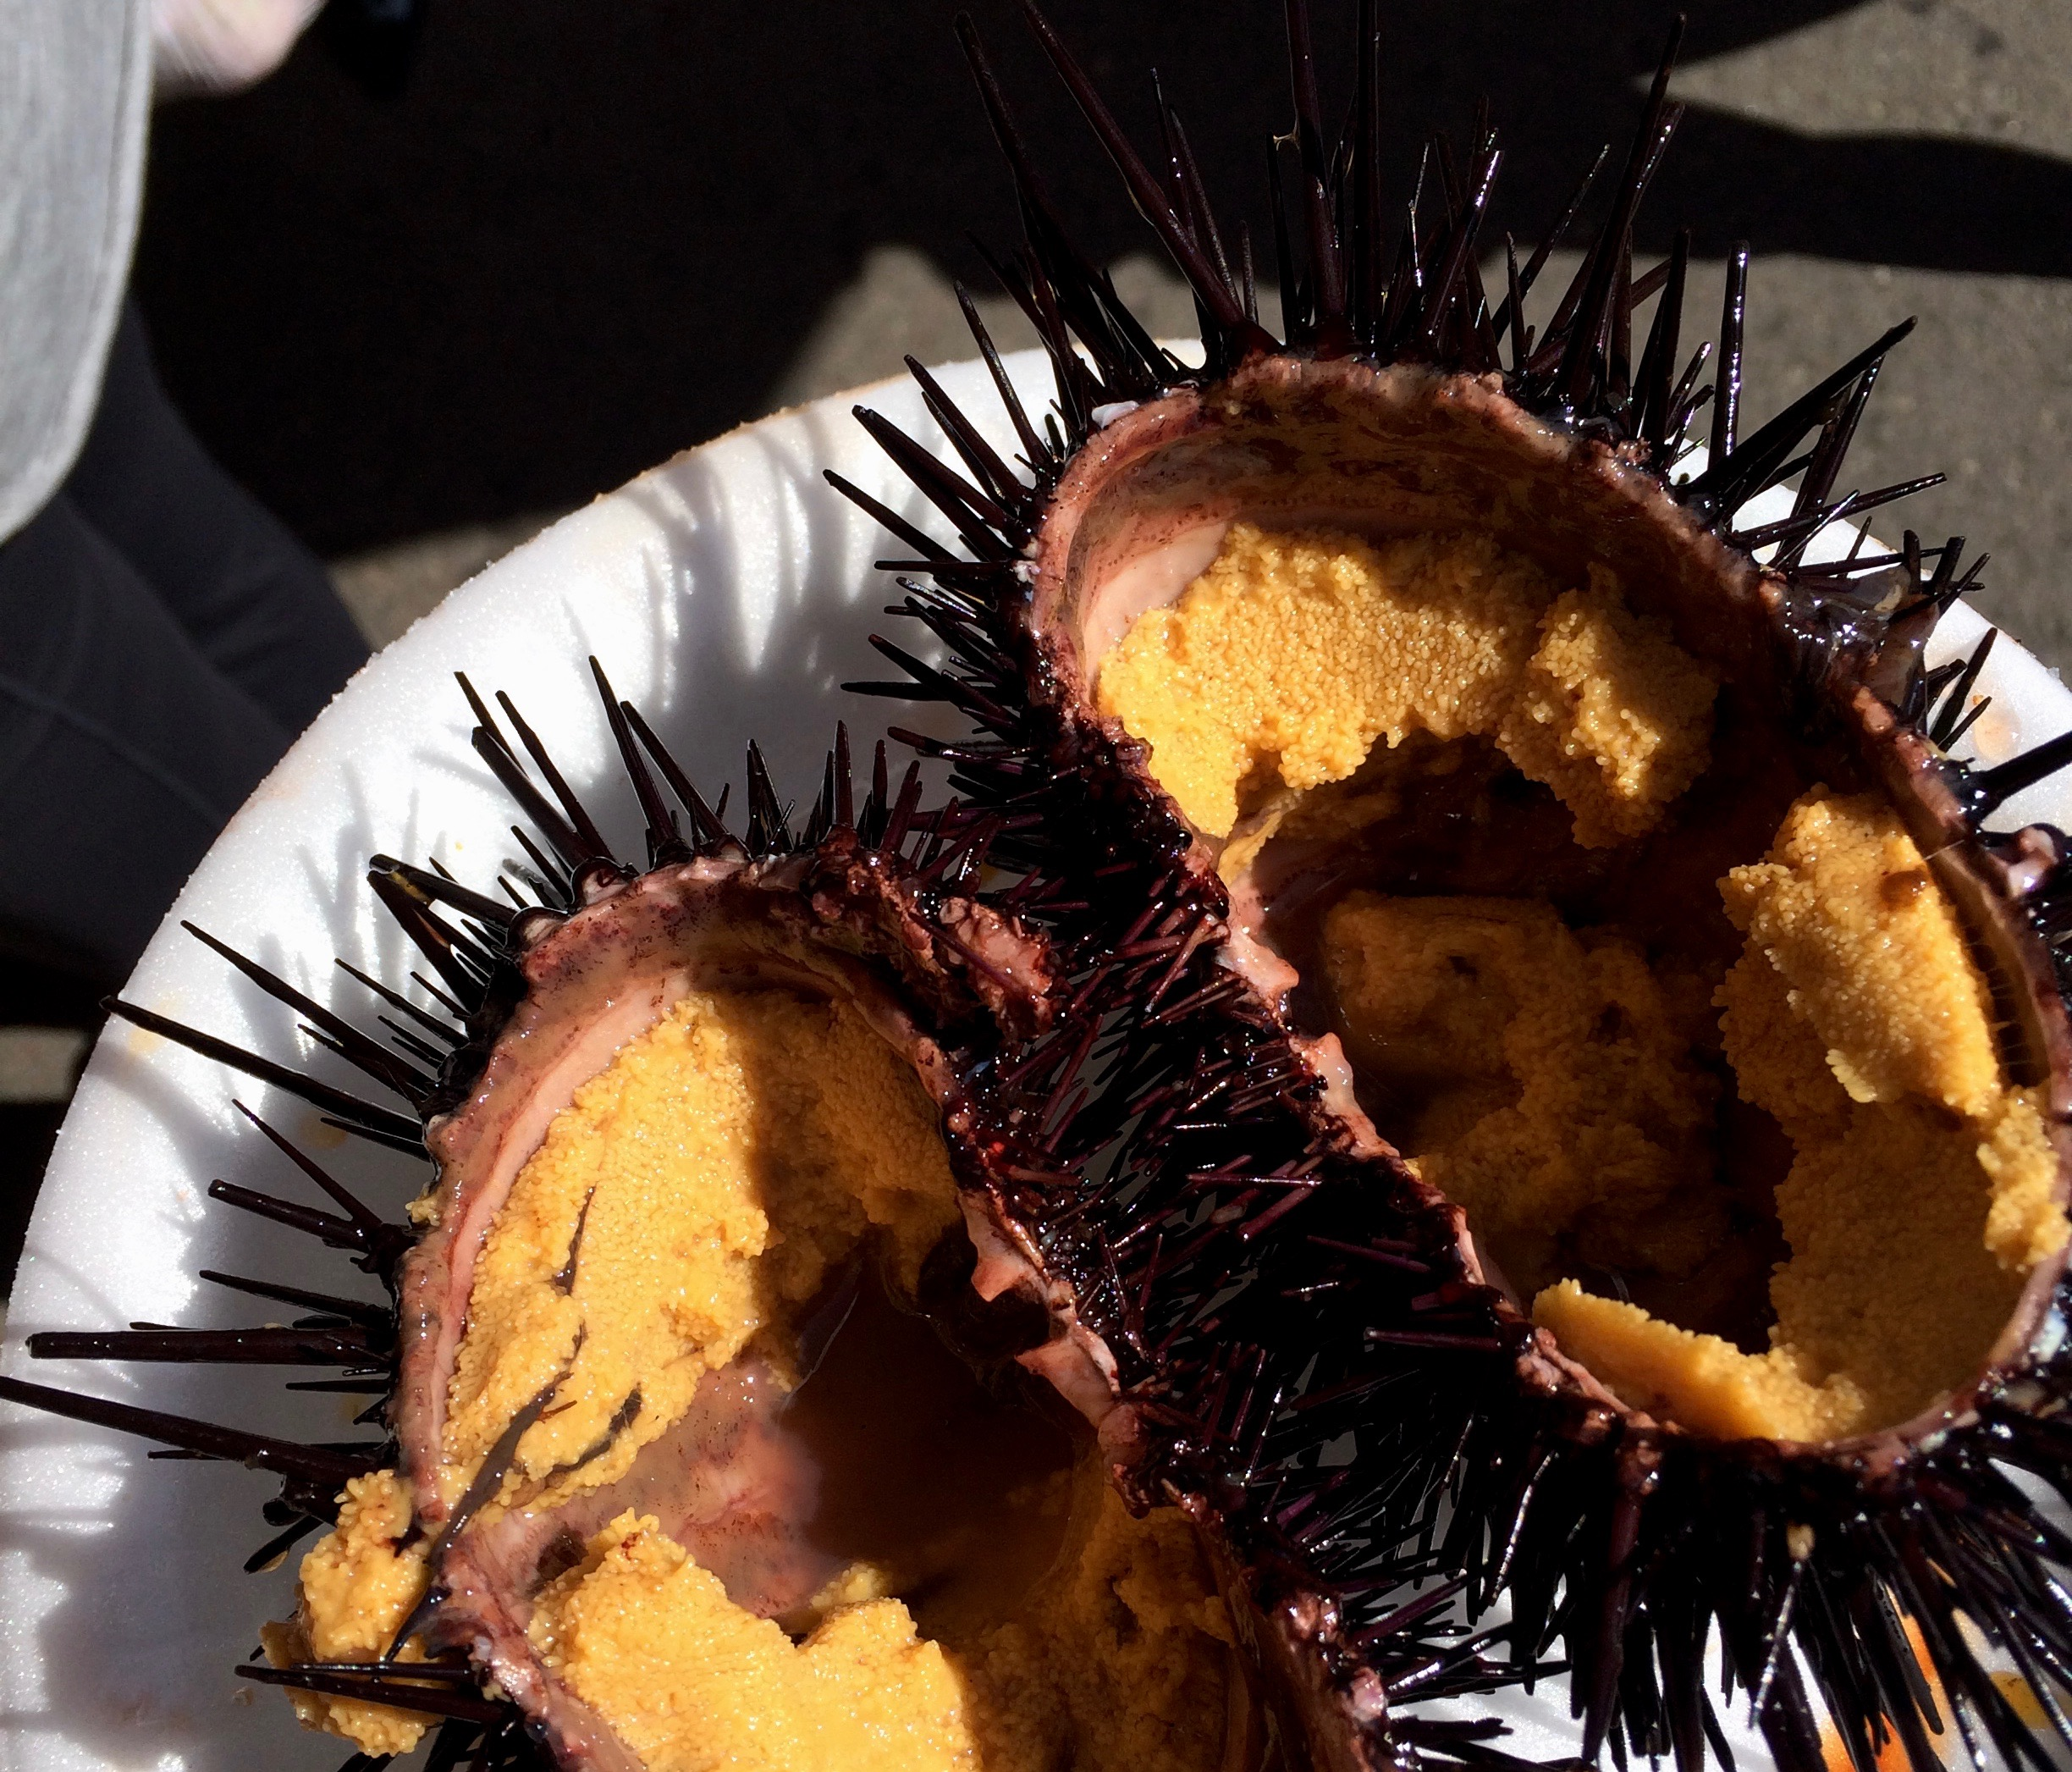 Freshly prepared uni at the San Diego market.